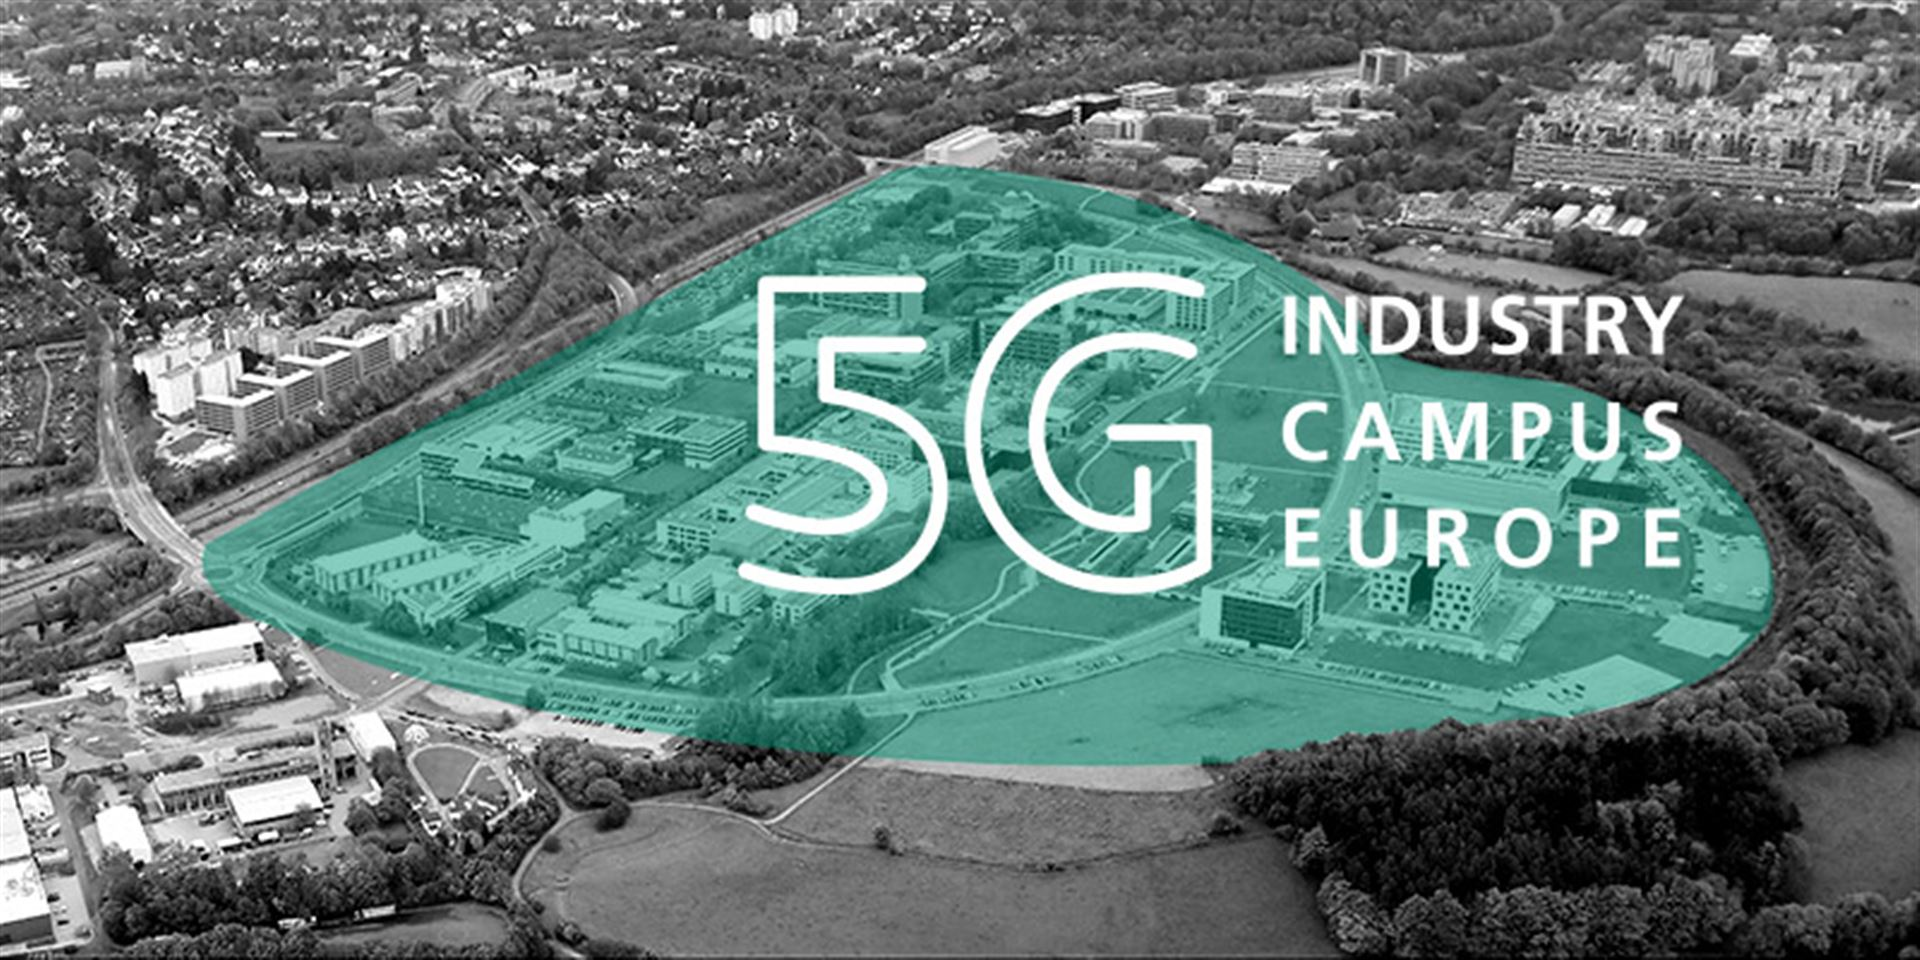 5G-Industry Campus Europe: Infrastruktur als Enabler für Machine-Learning-Anwendungen